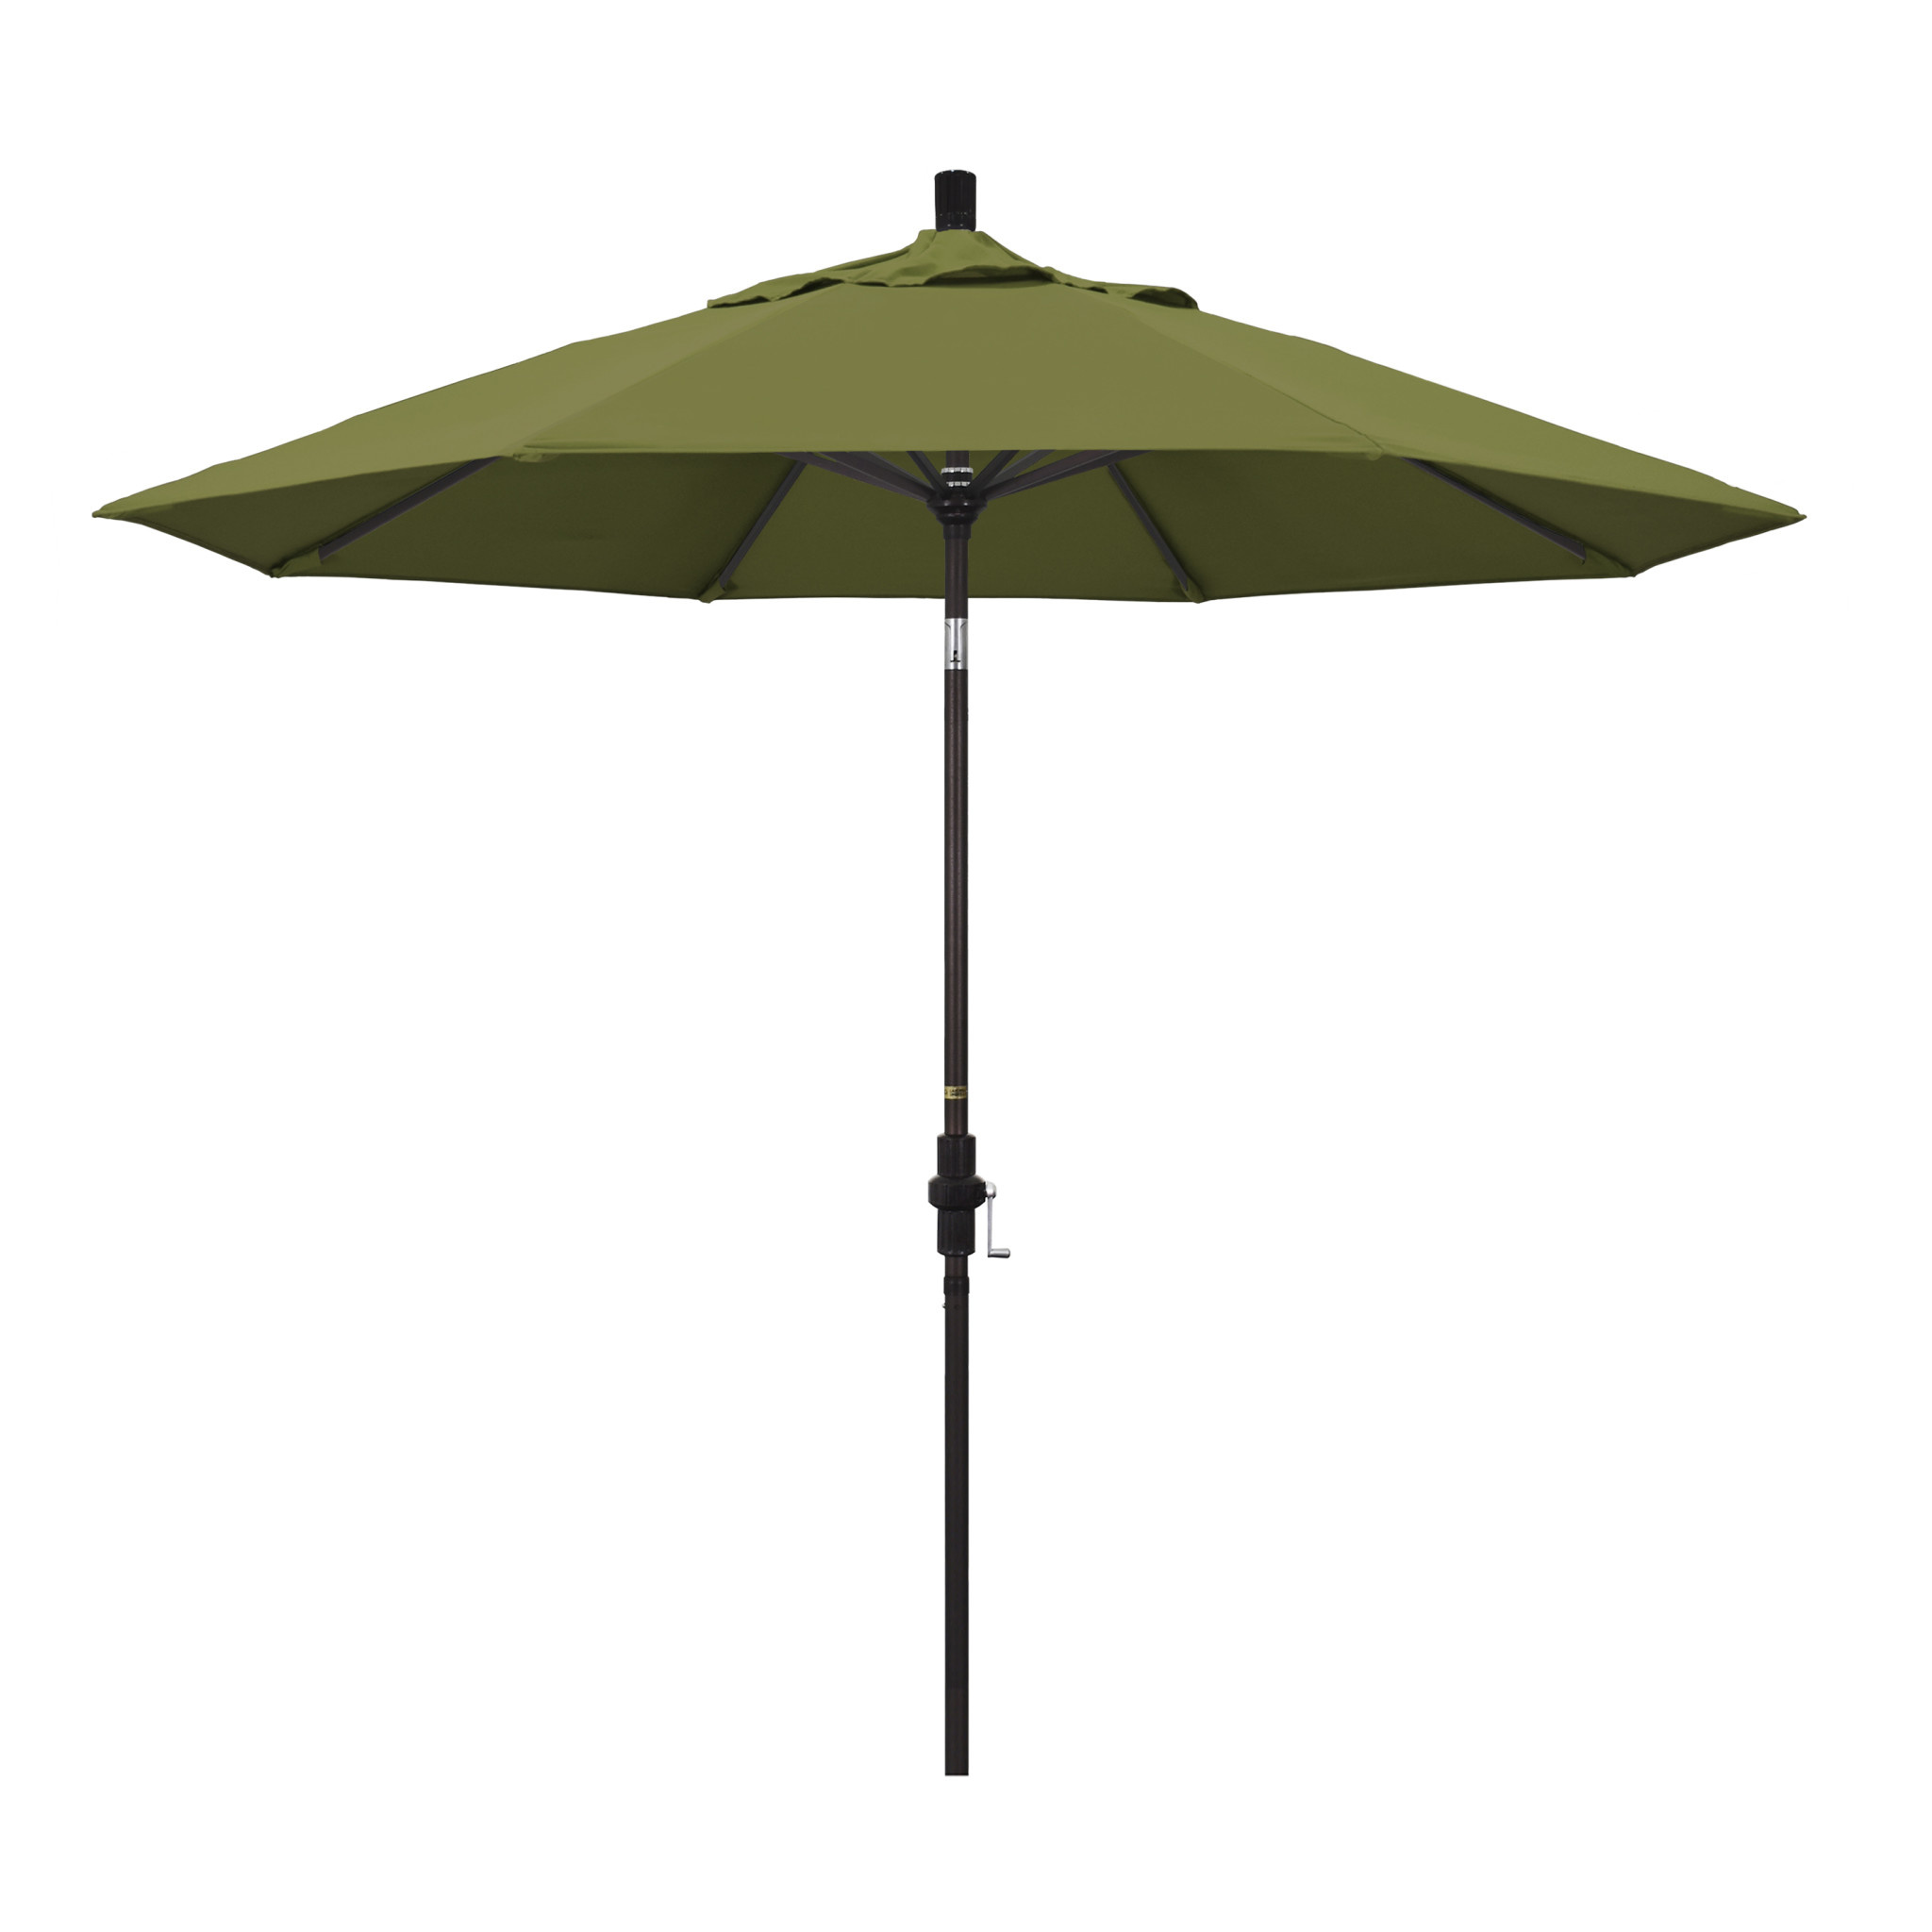 California Umbrella 9' Collar Tilt - Pacifica Palm